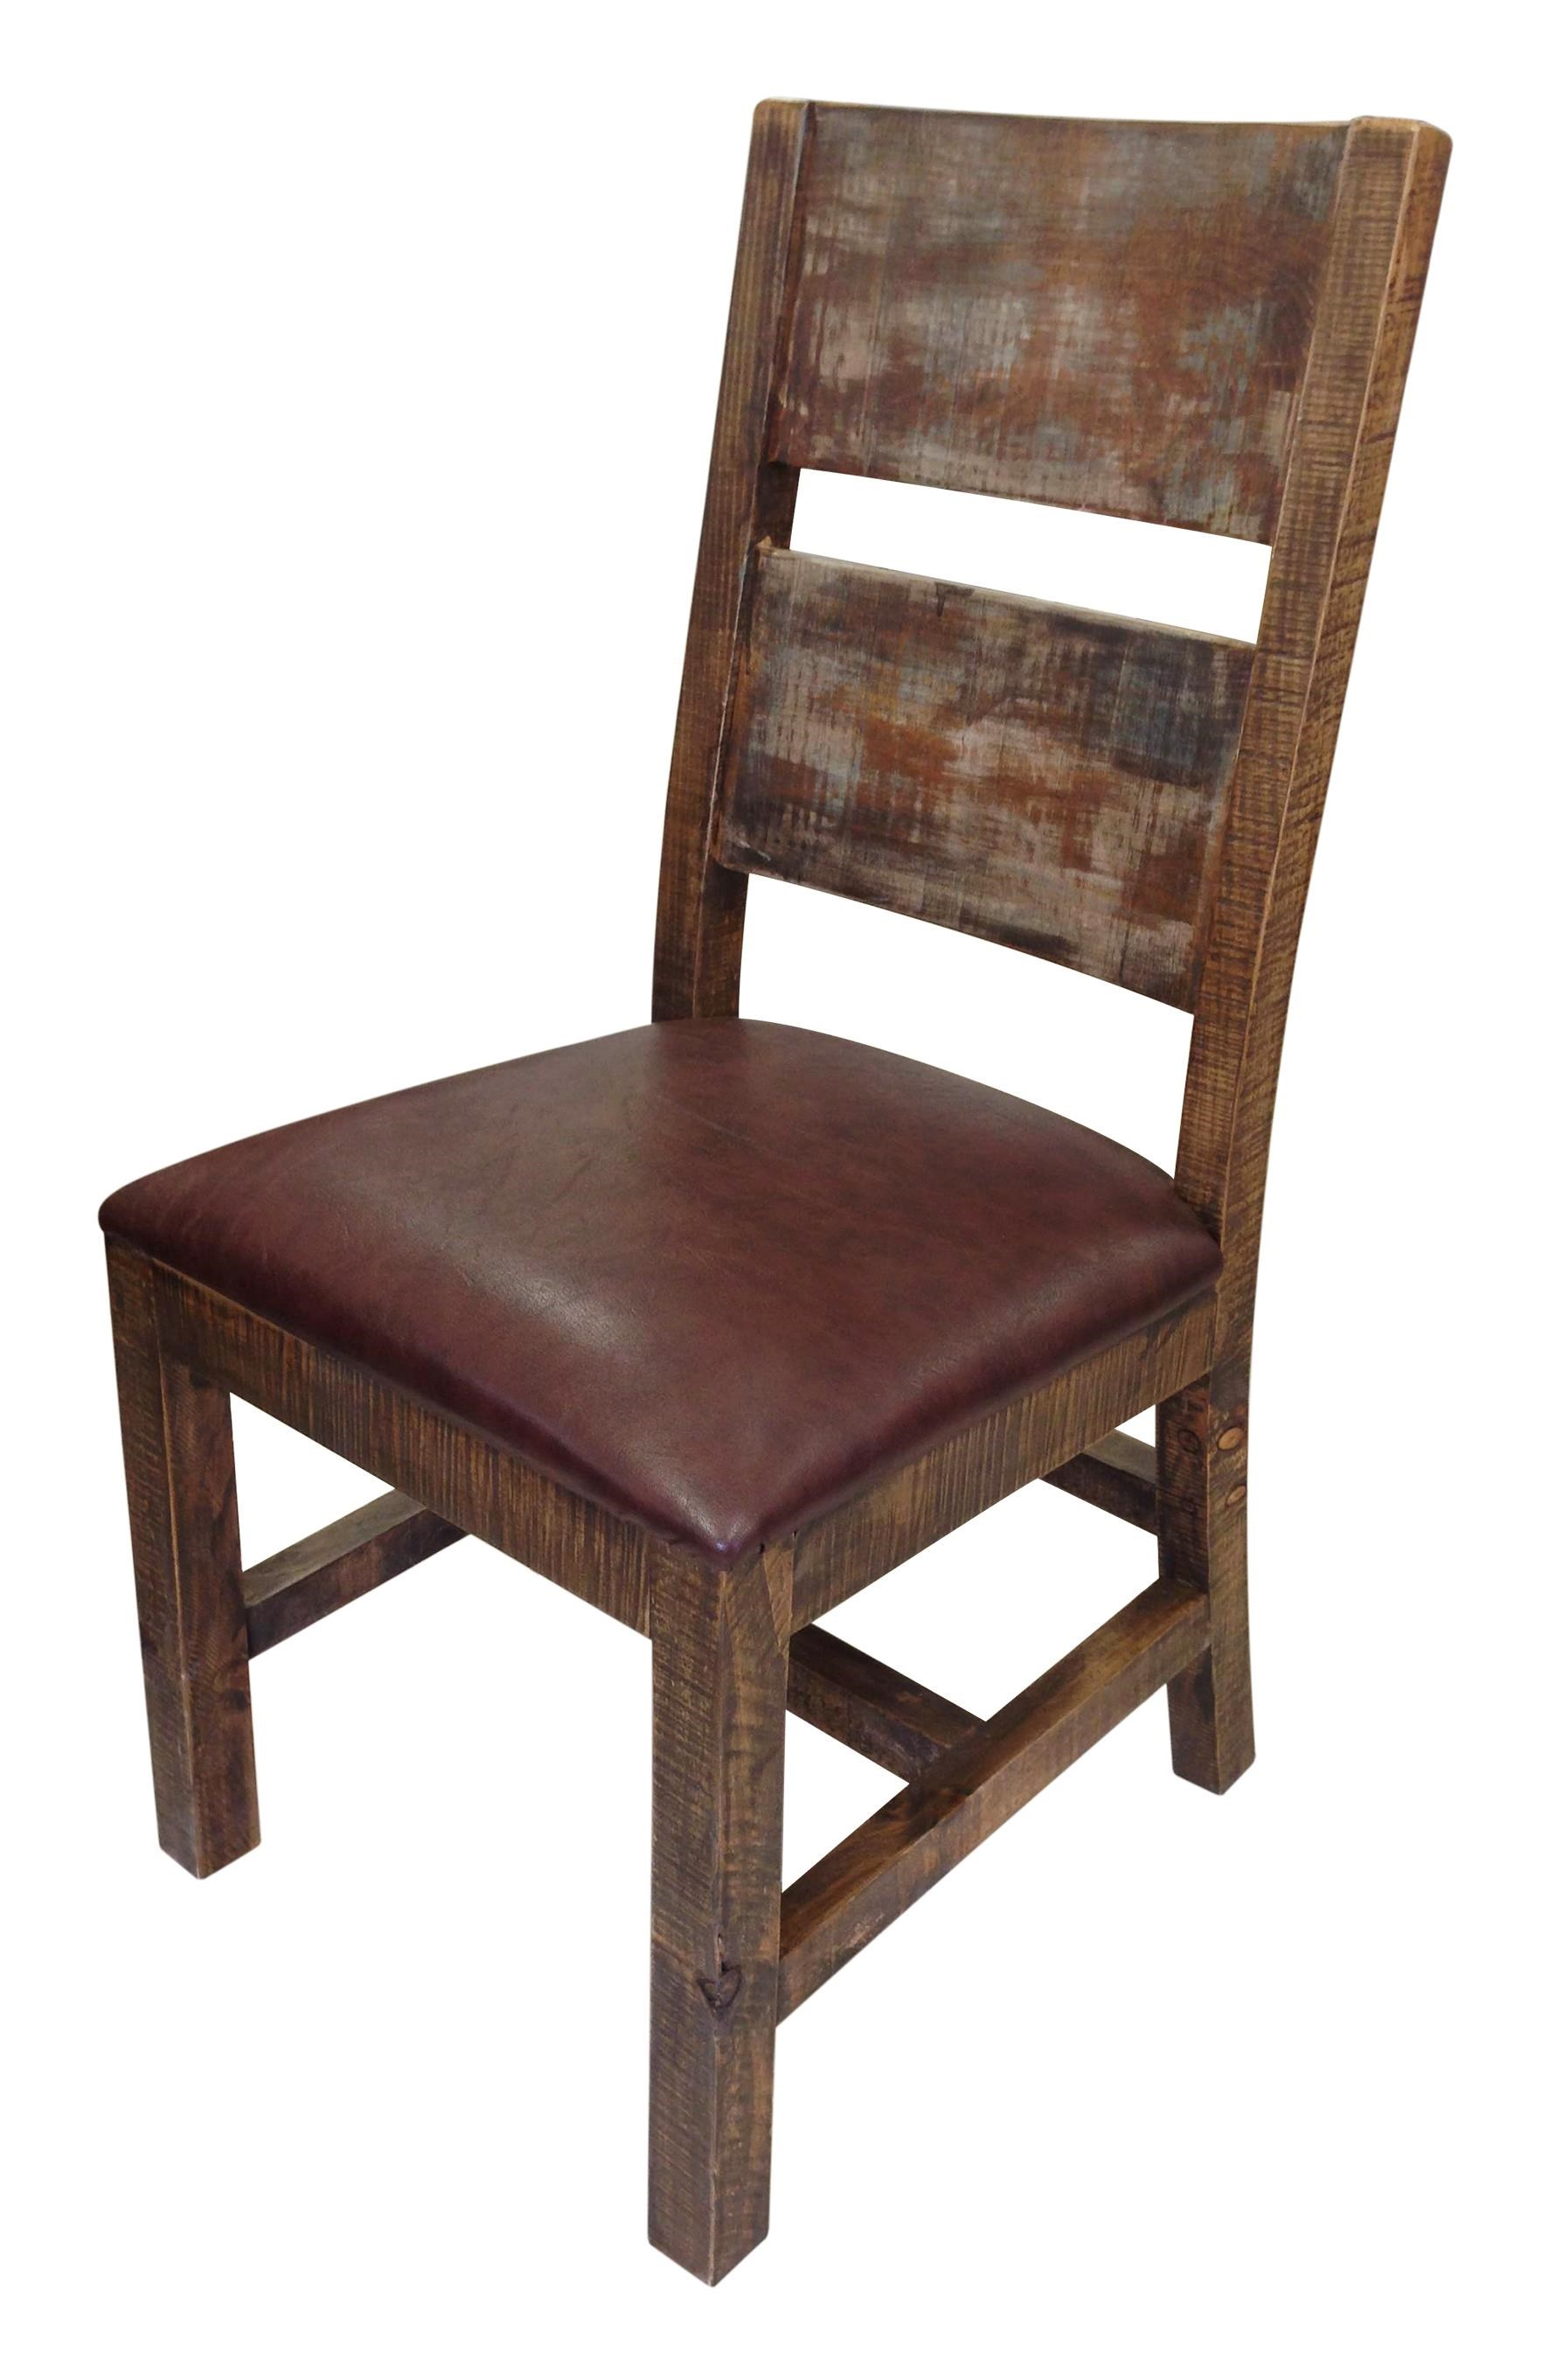 solid wood chairs overstock leather club international furniture direct 900 antique ifd967chair mc chair with bonded seat dunk bright dining side